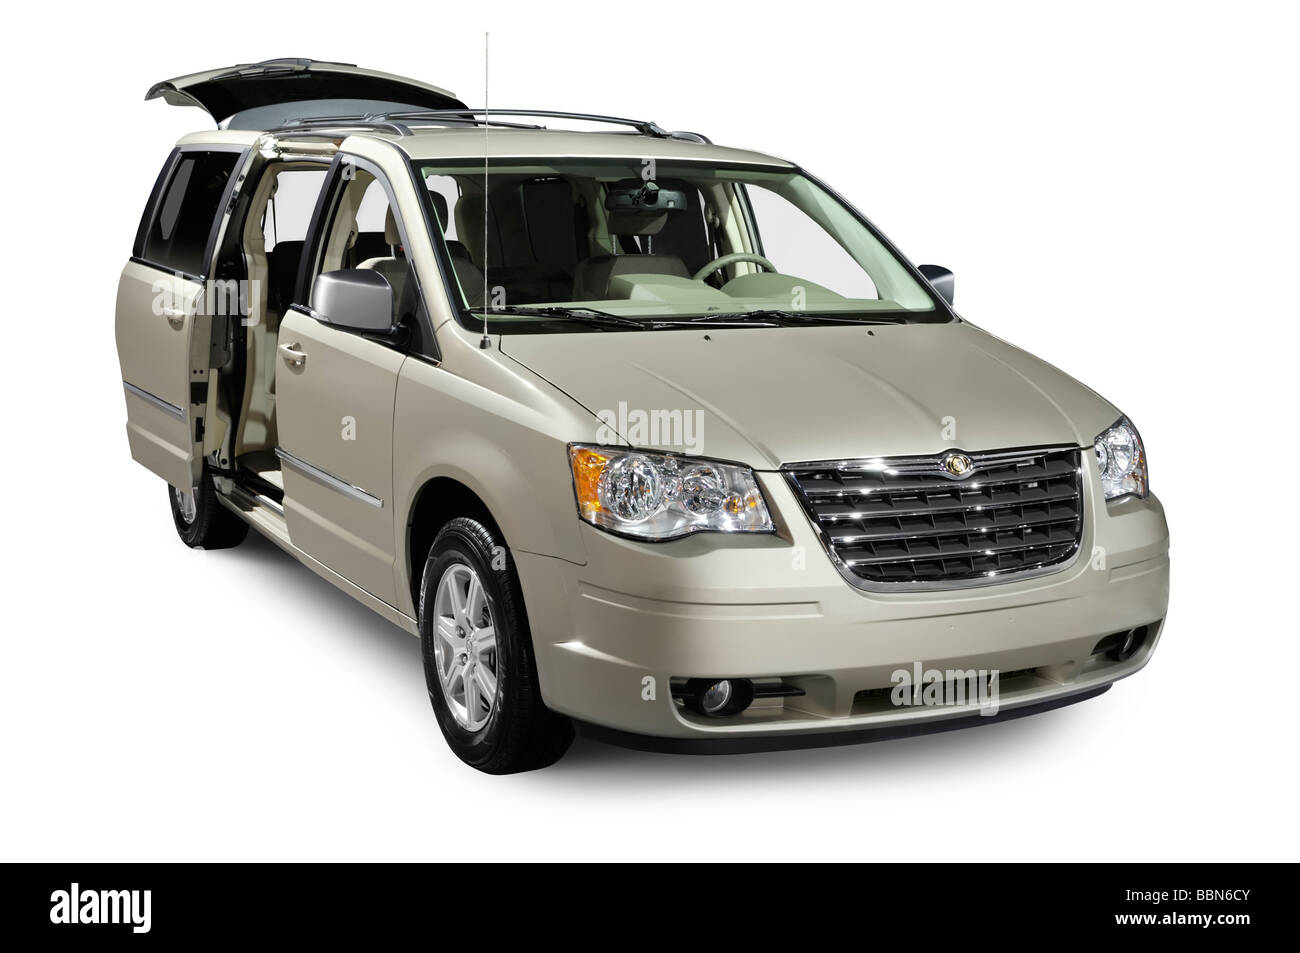 2009 chrysler town and country minivan